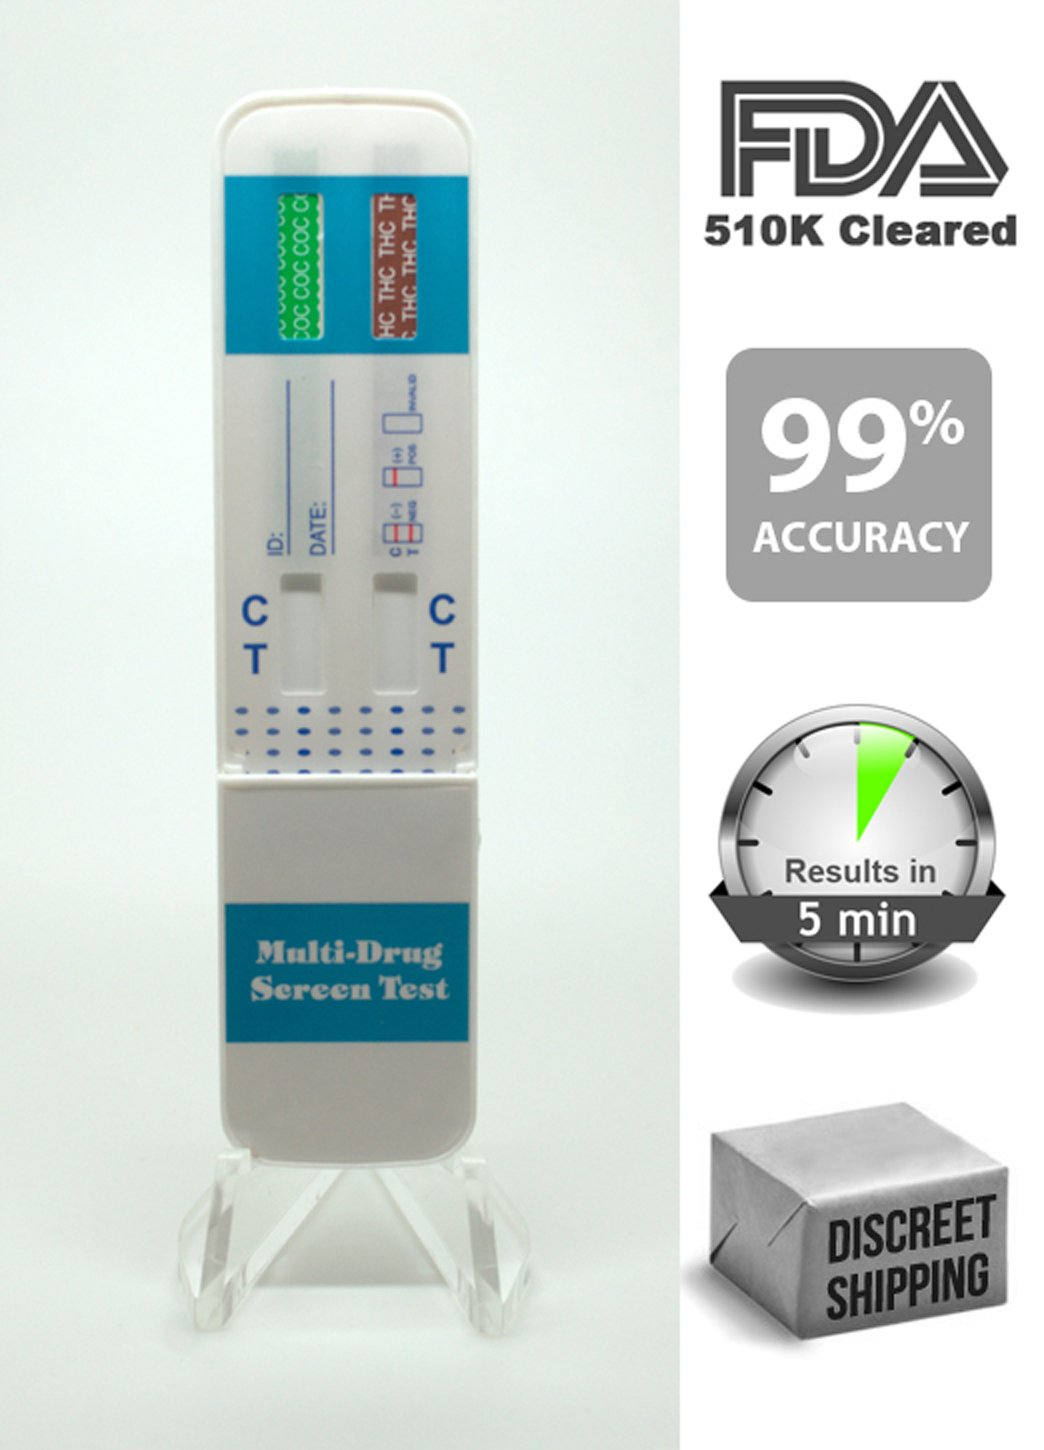 5 Pack of Instant 2 Panel Test Kits, Test for Cocaine and Marijuana, 99% Accuracy level, Easy to use.